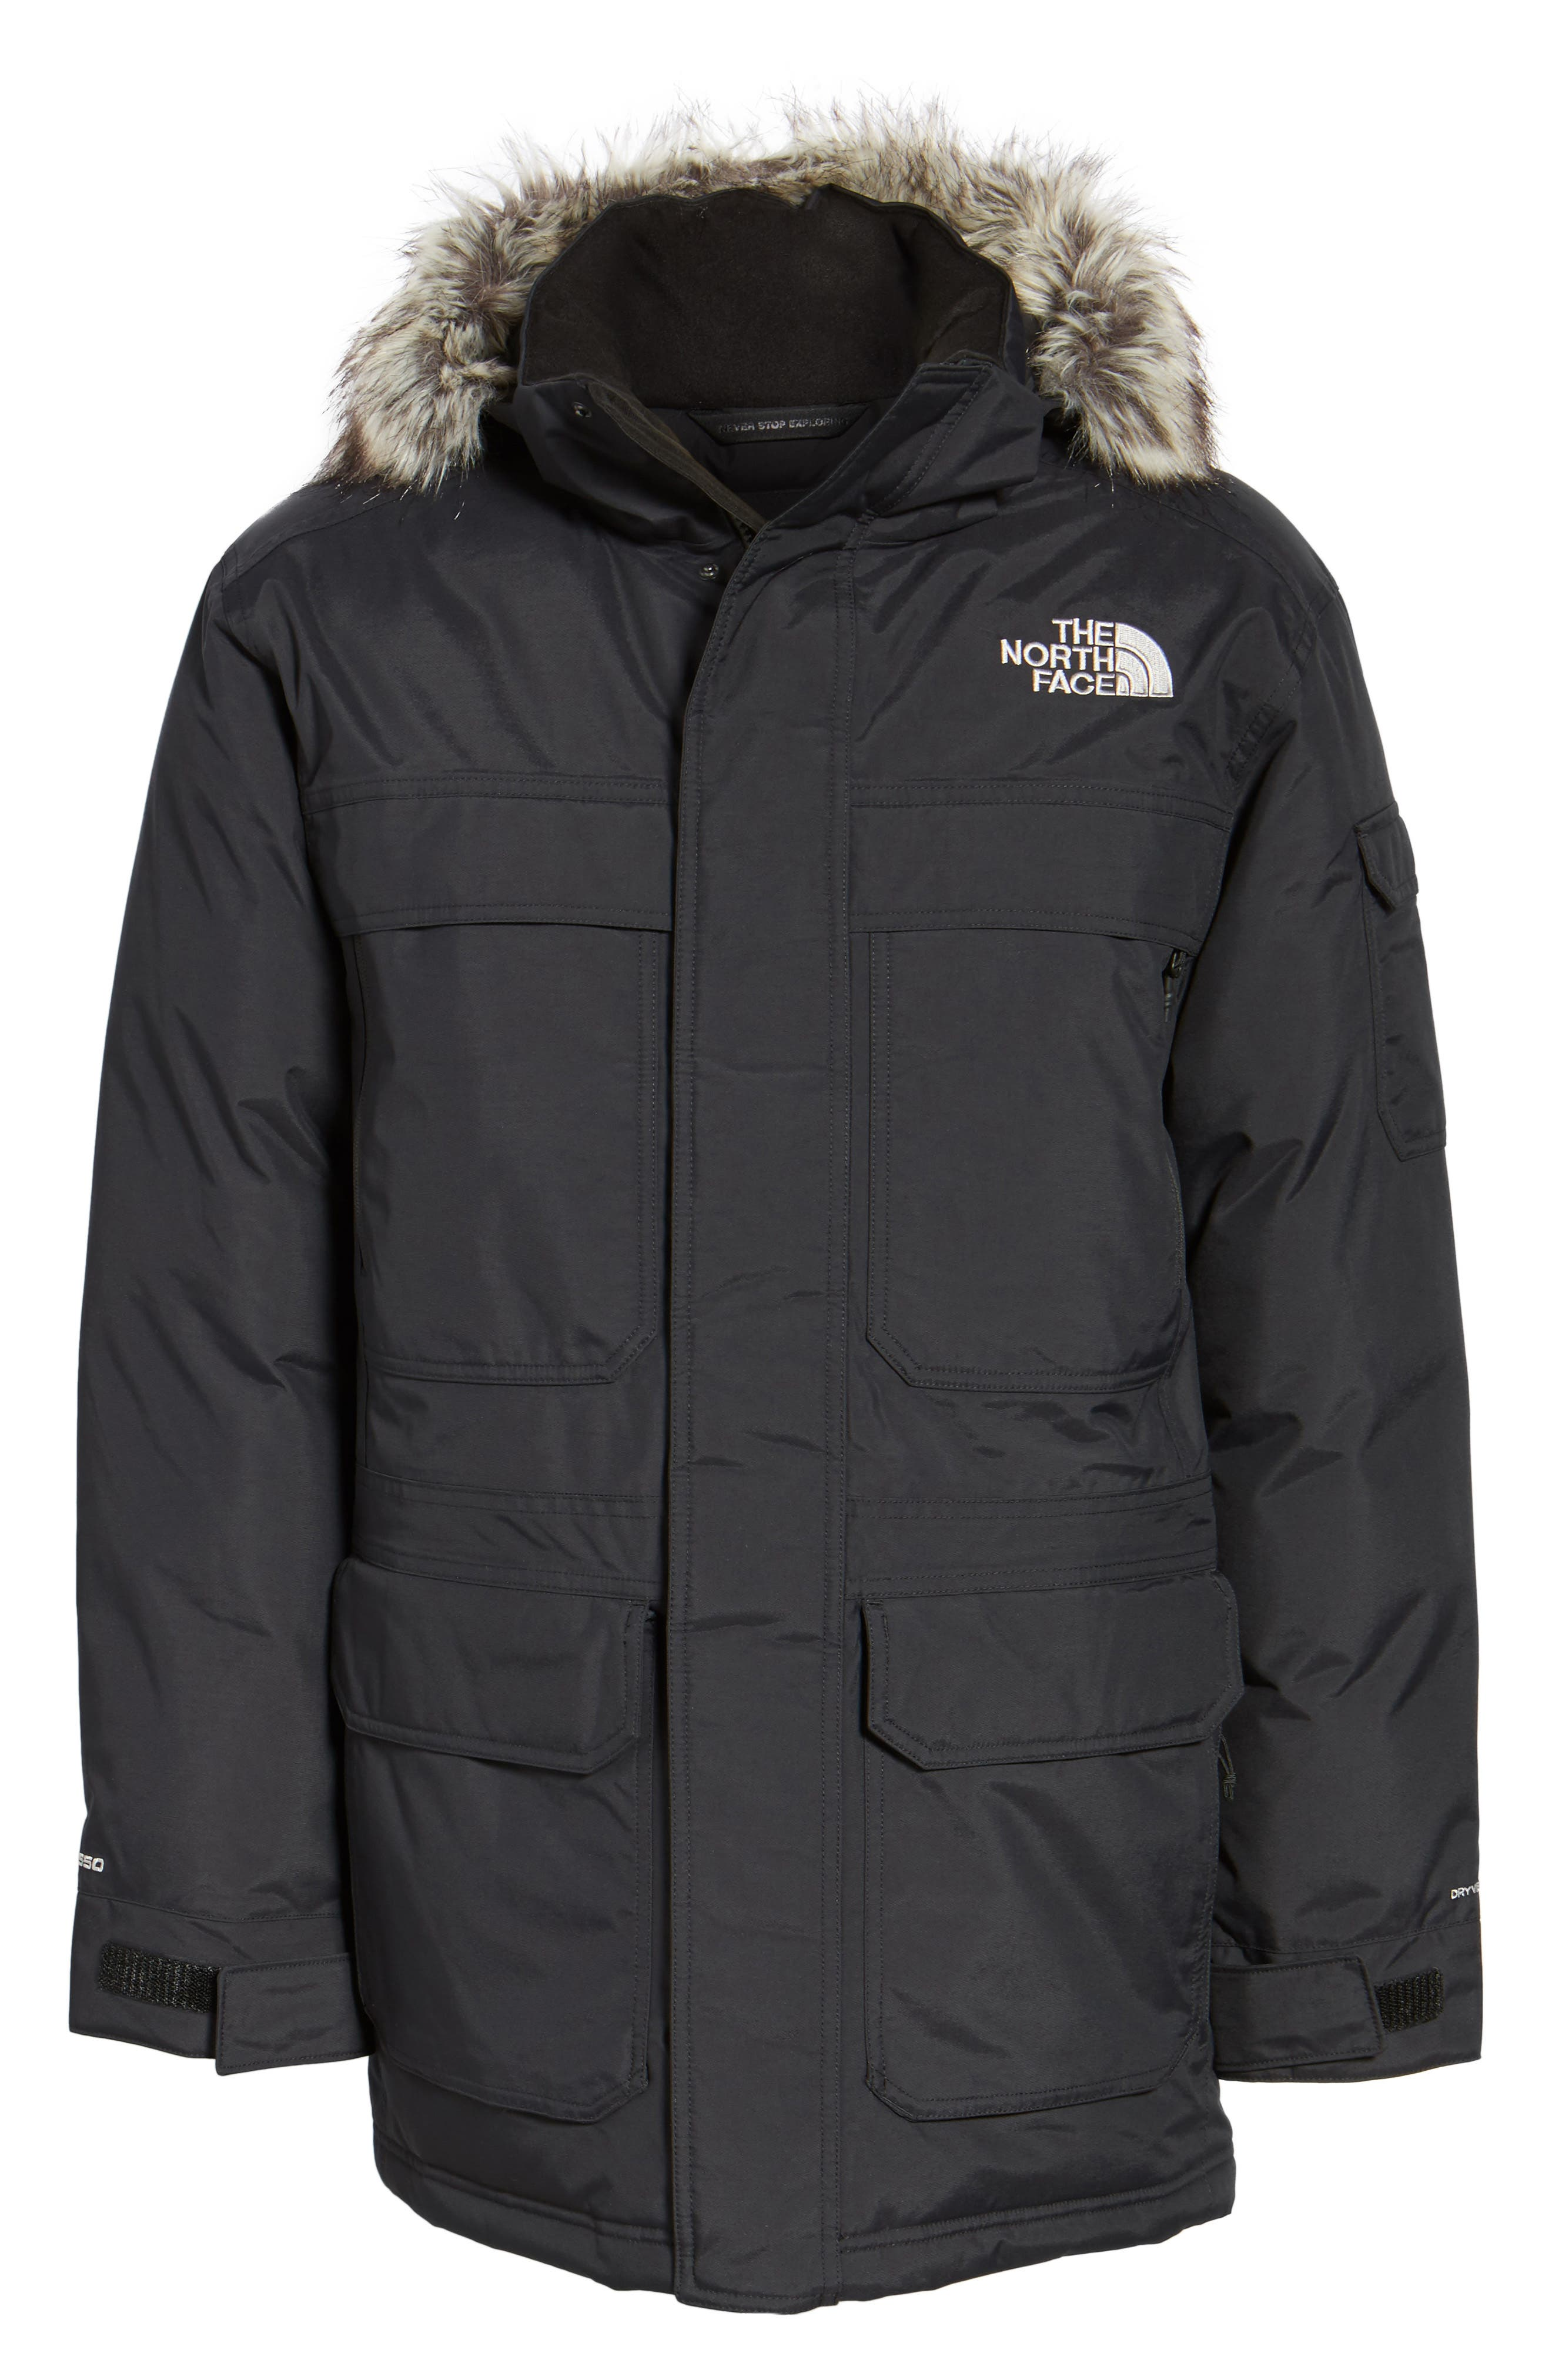 THE NORTH FACE,                             McMurdo III Waterproof Parka,                             Alternate thumbnail 5, color,                             001